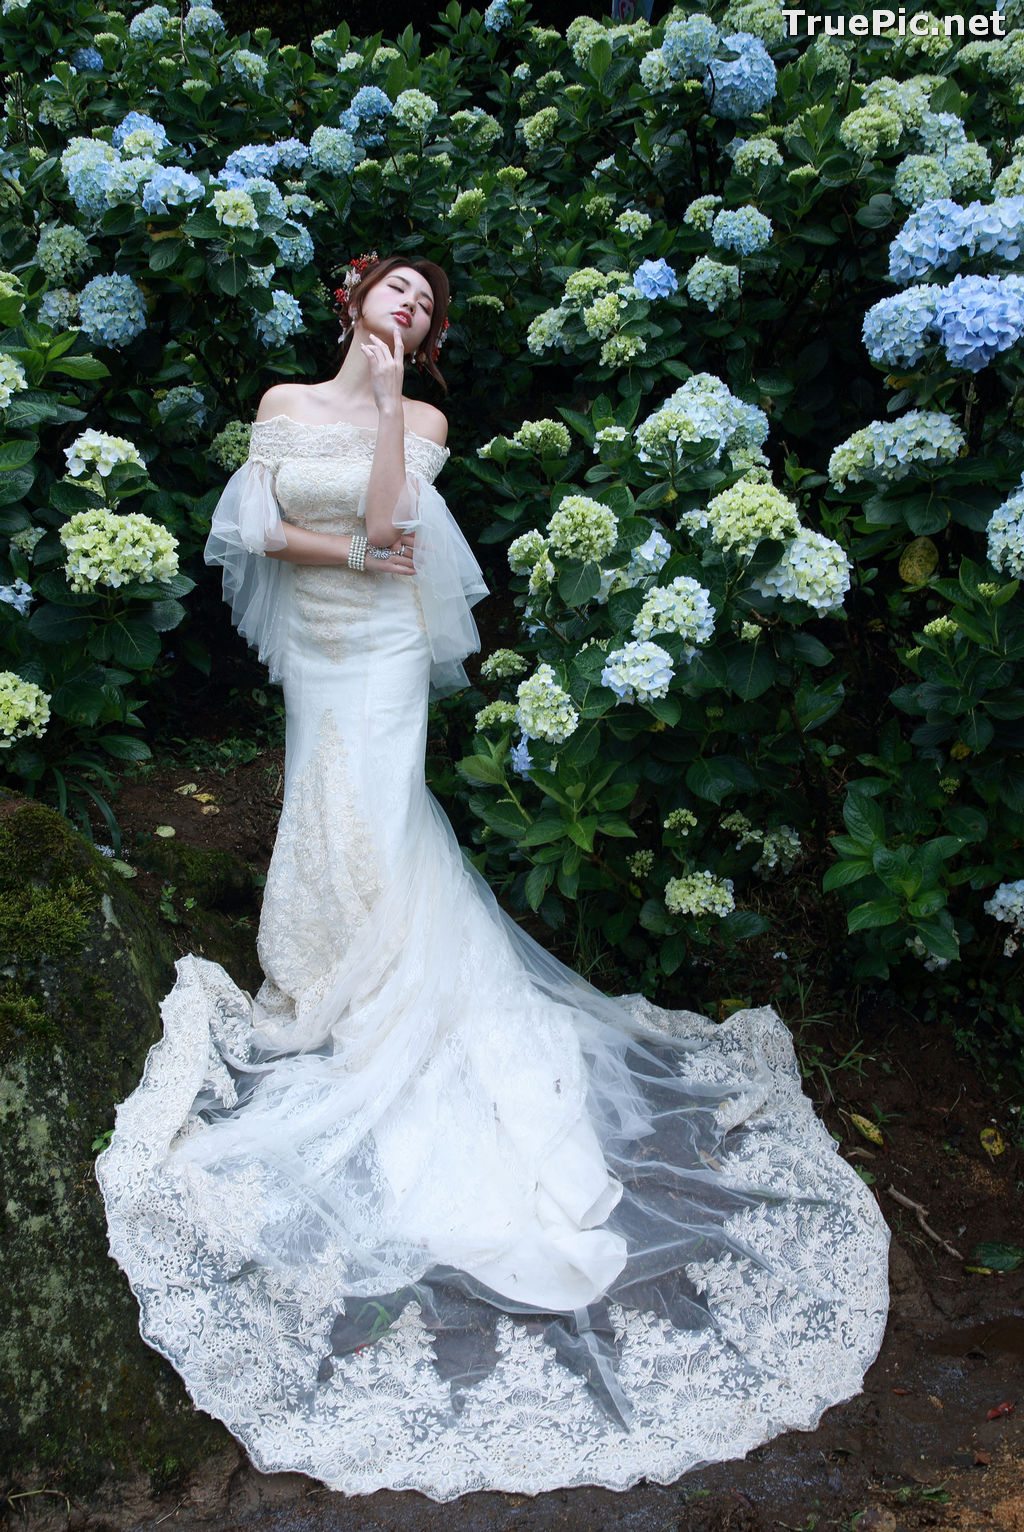 Image Taiwanese Model - 張倫甄 - Beautiful Bride and Hydrangea Flowers - TruePic.net - Picture-2